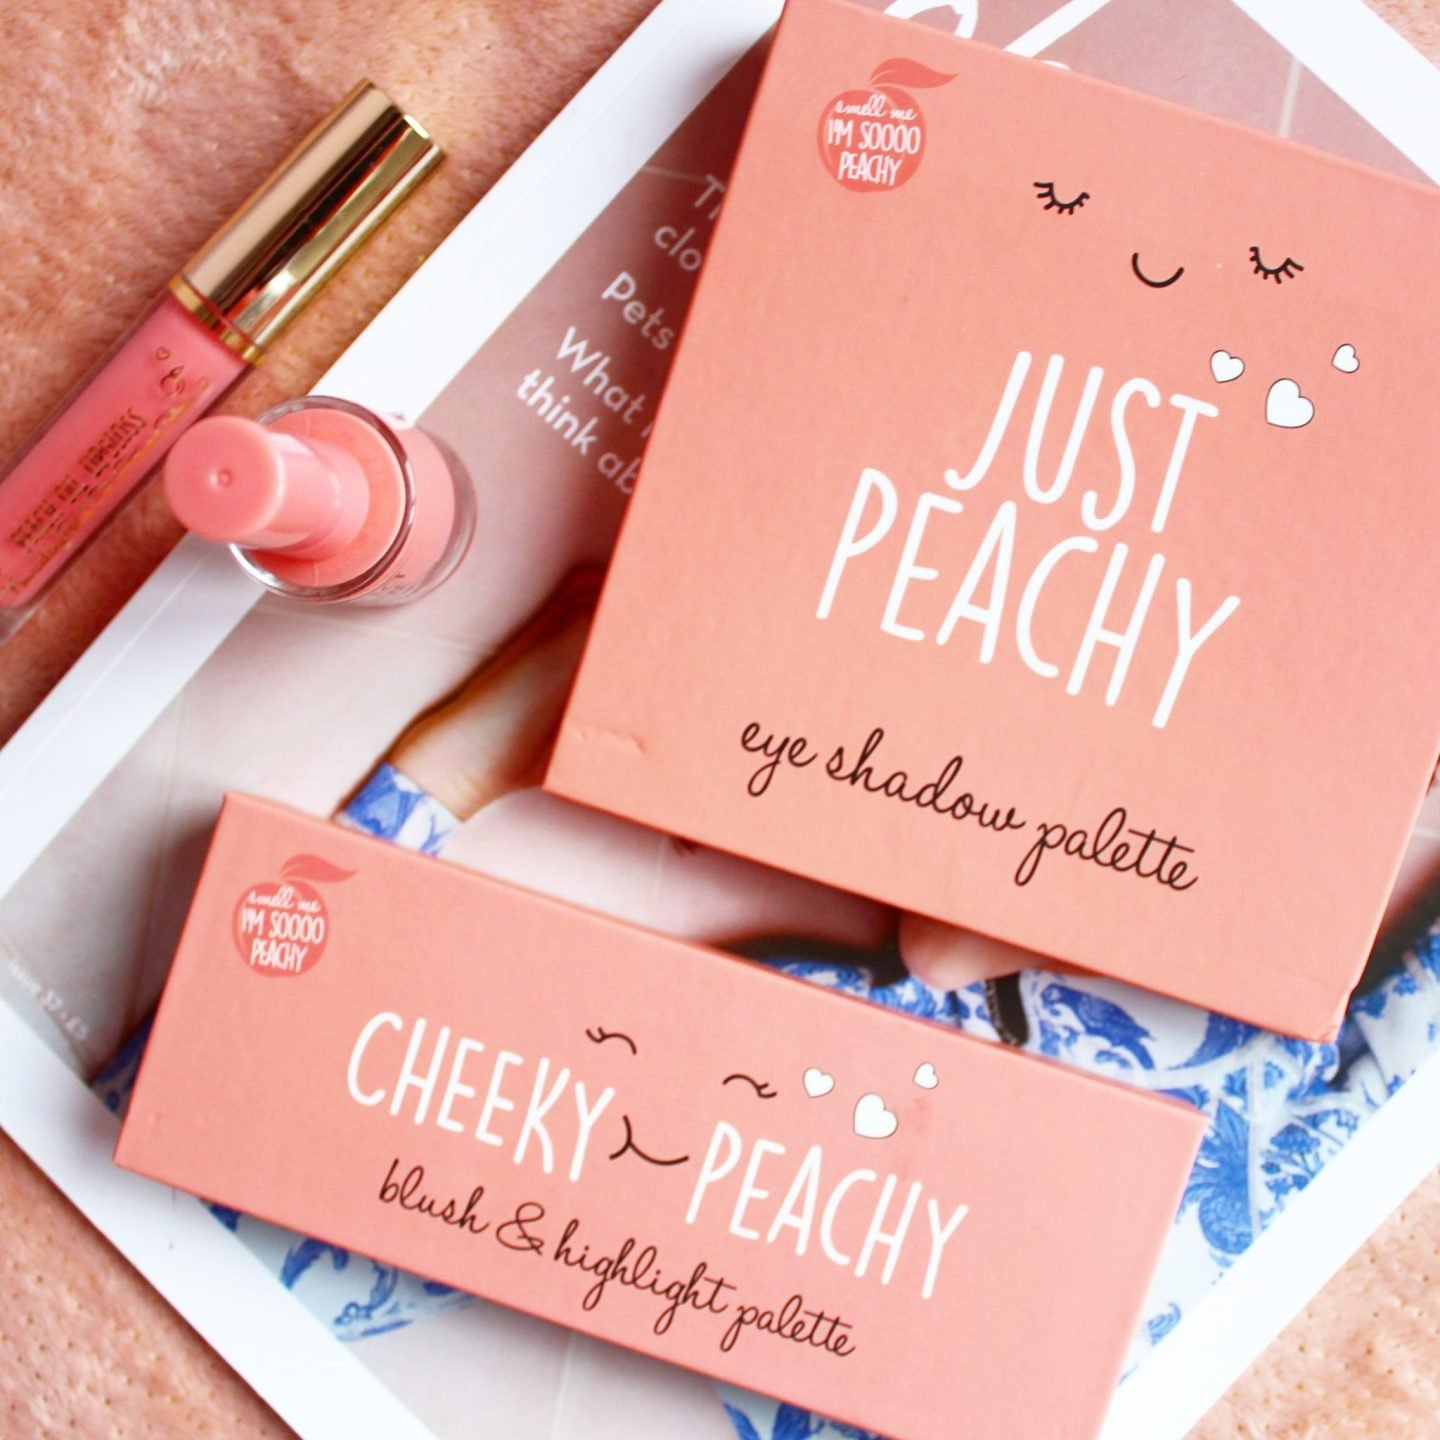 Primark Beauty 'Just Peachy' Collection | Review & Swatches